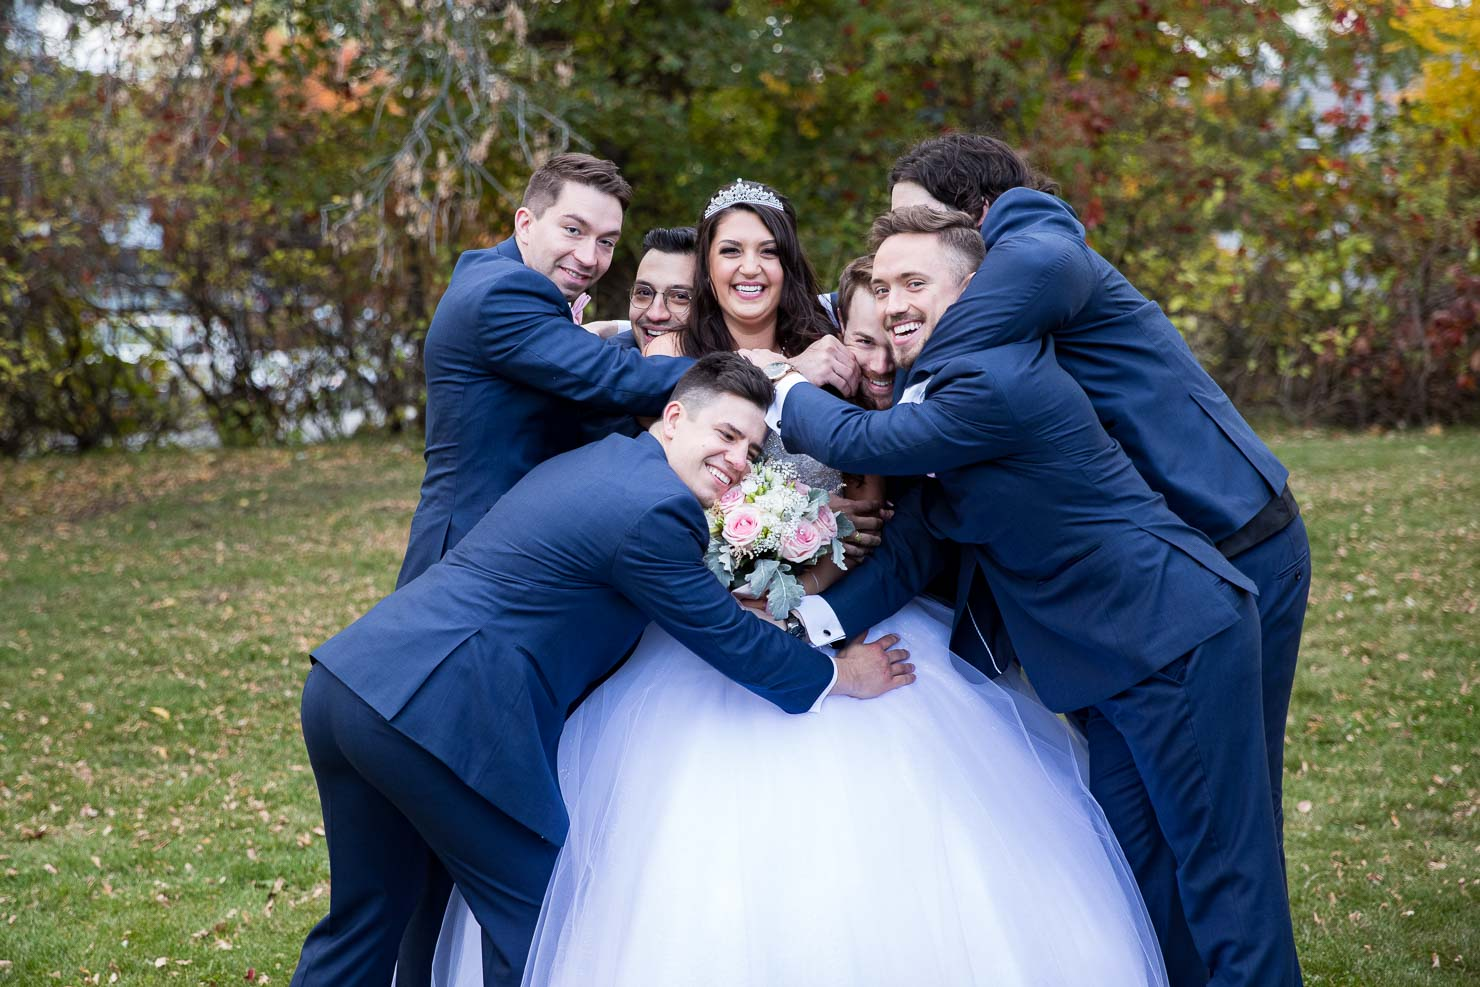 wedding, bride, groomsmen, wedding, sudbury wedding, akaiserphoto, wedding photographer